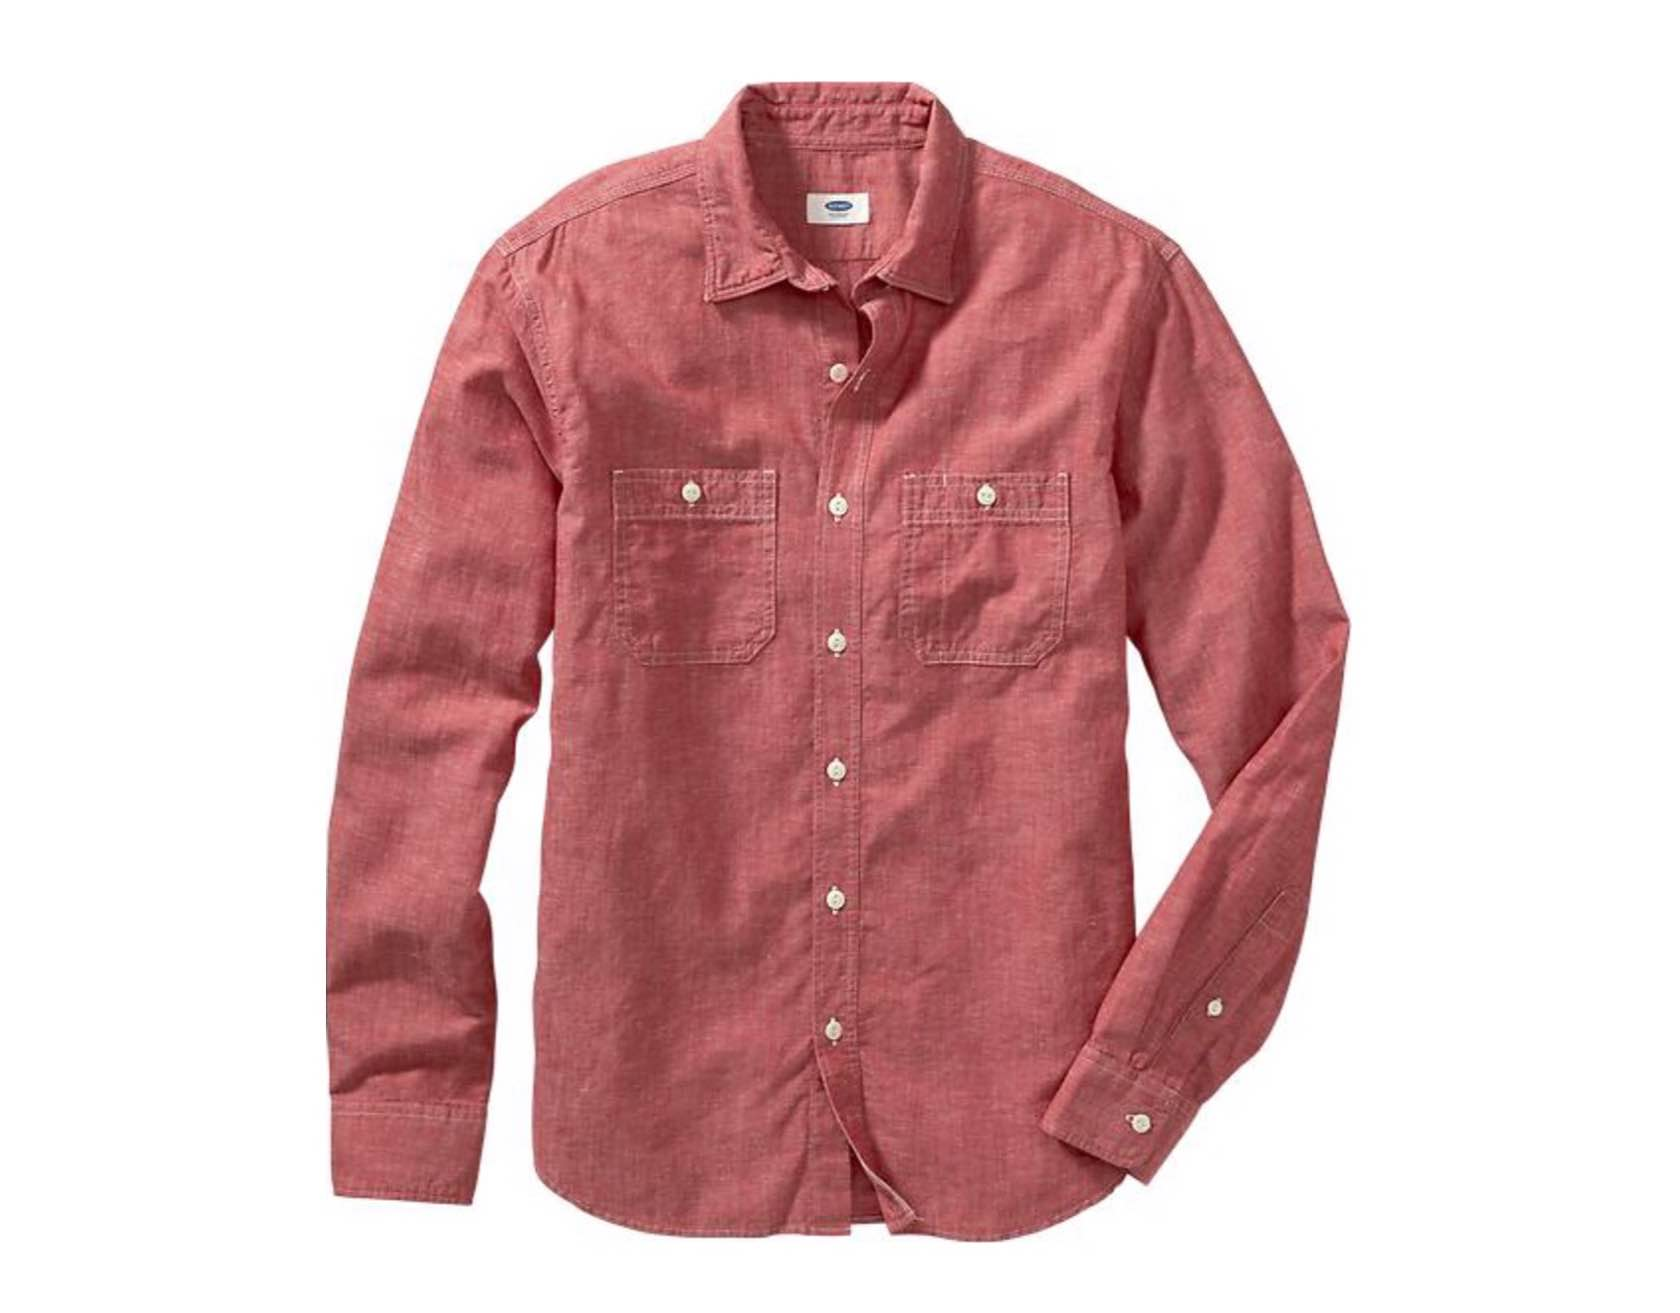 Old Navy's slim-fit chambray shirt. ($35)